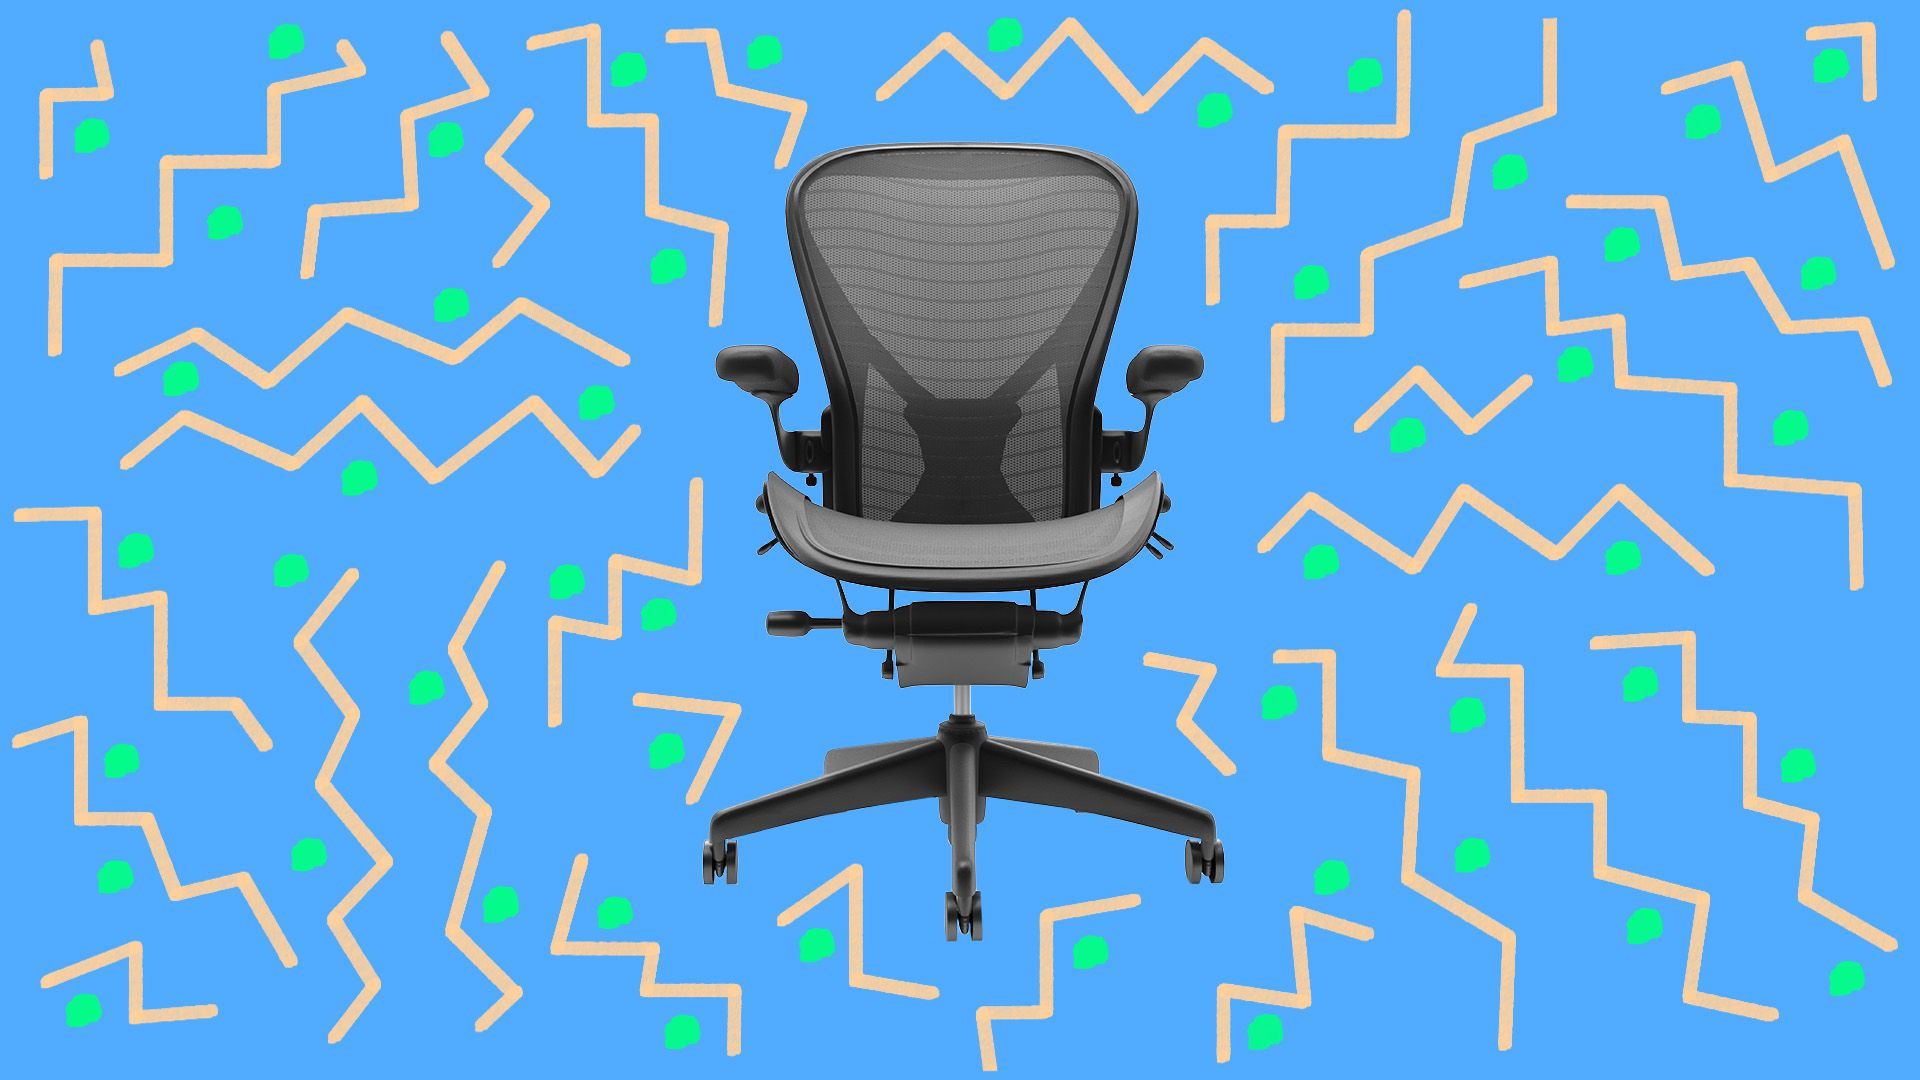 Illustration of office chair surrounded by 90s style pattern